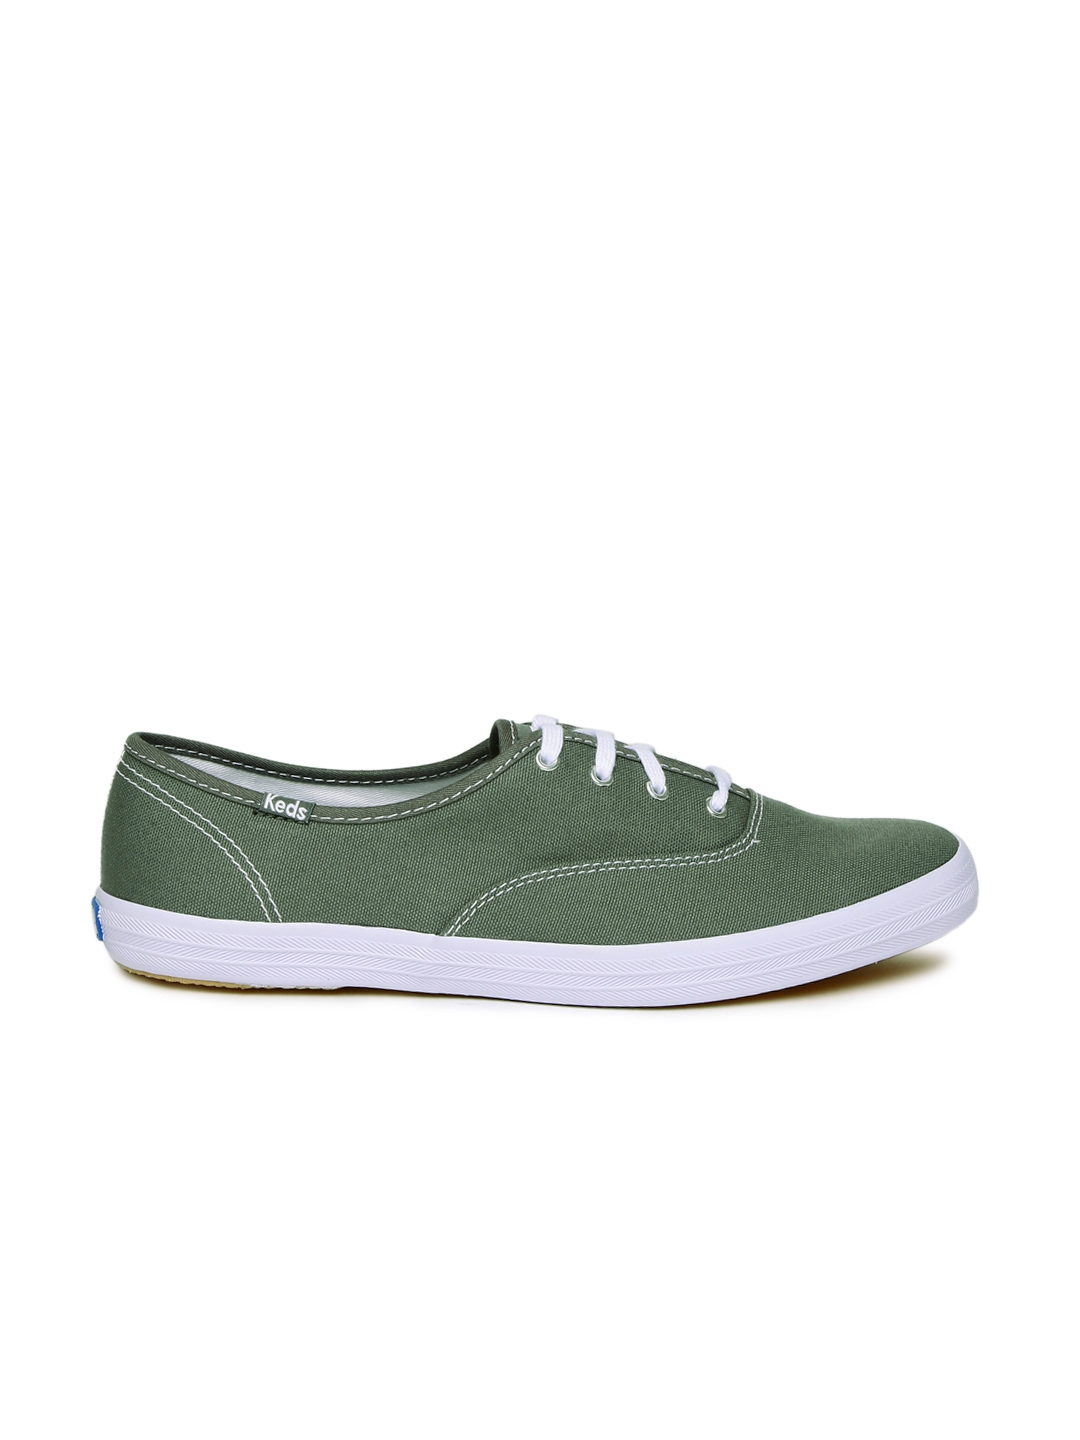 8f890d1bc5c78 Buy Keds Women Grey CHAMPION Sneakers - Casual Shoes for Women ...